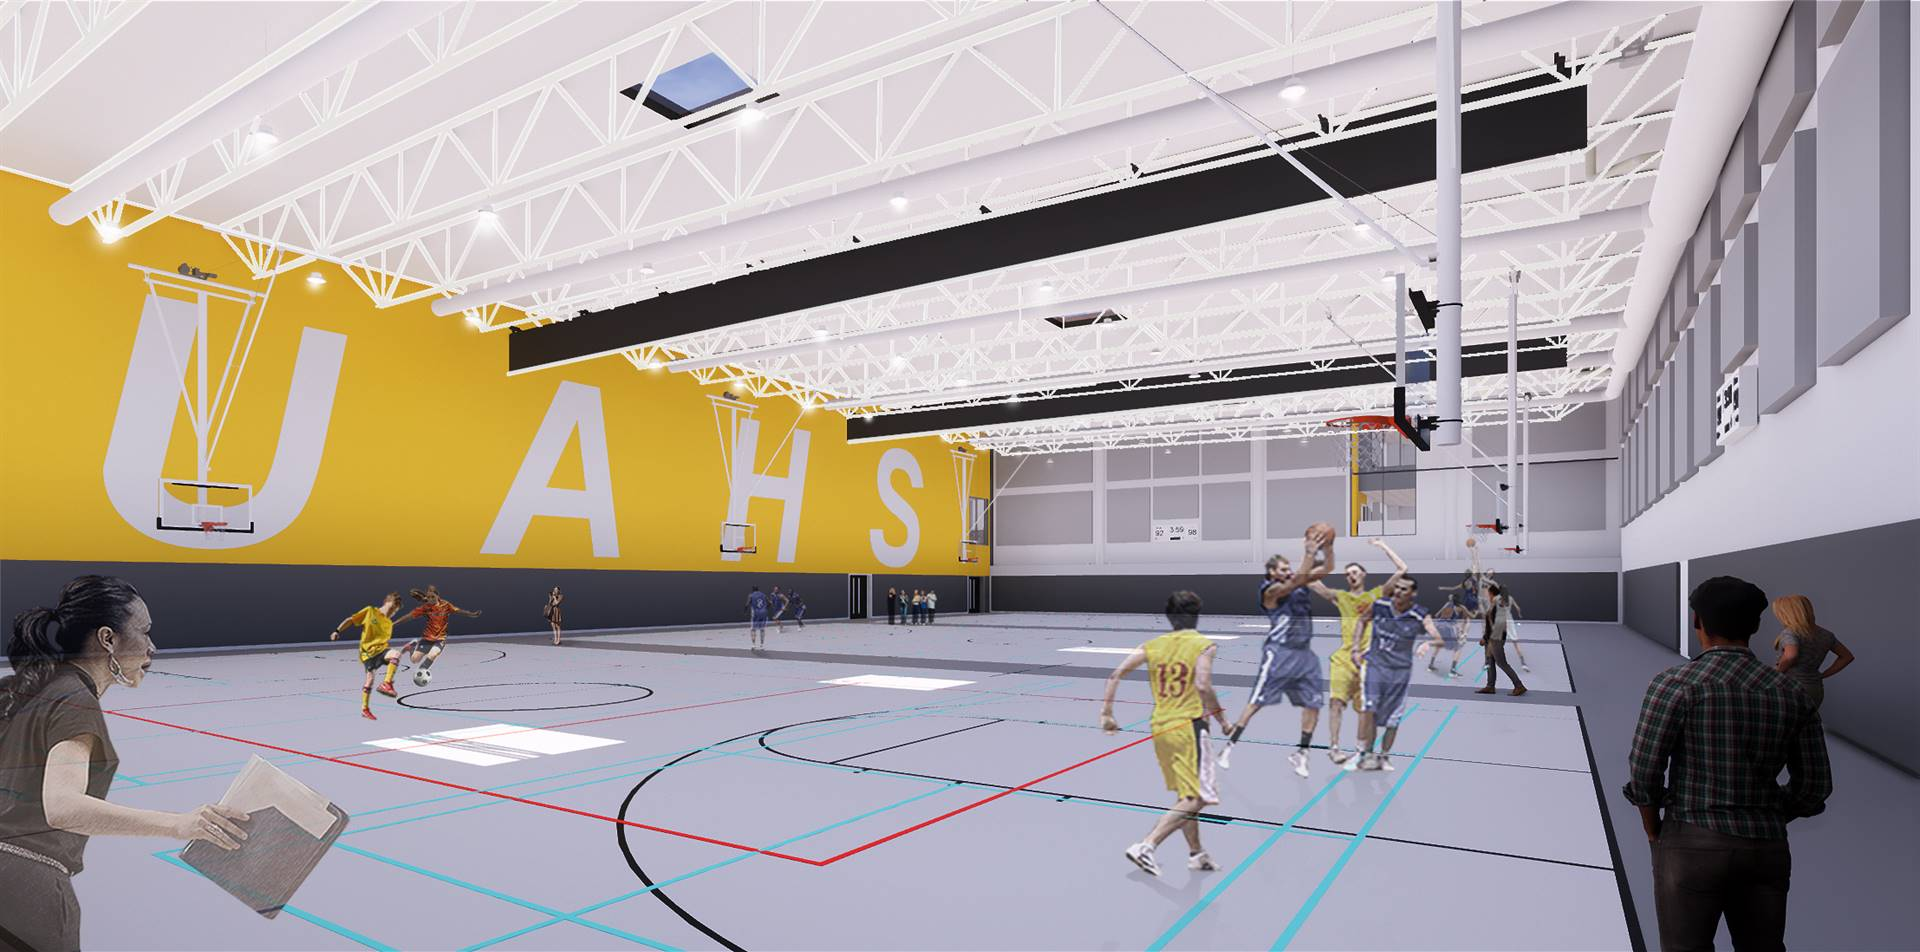 A rendering of the field house